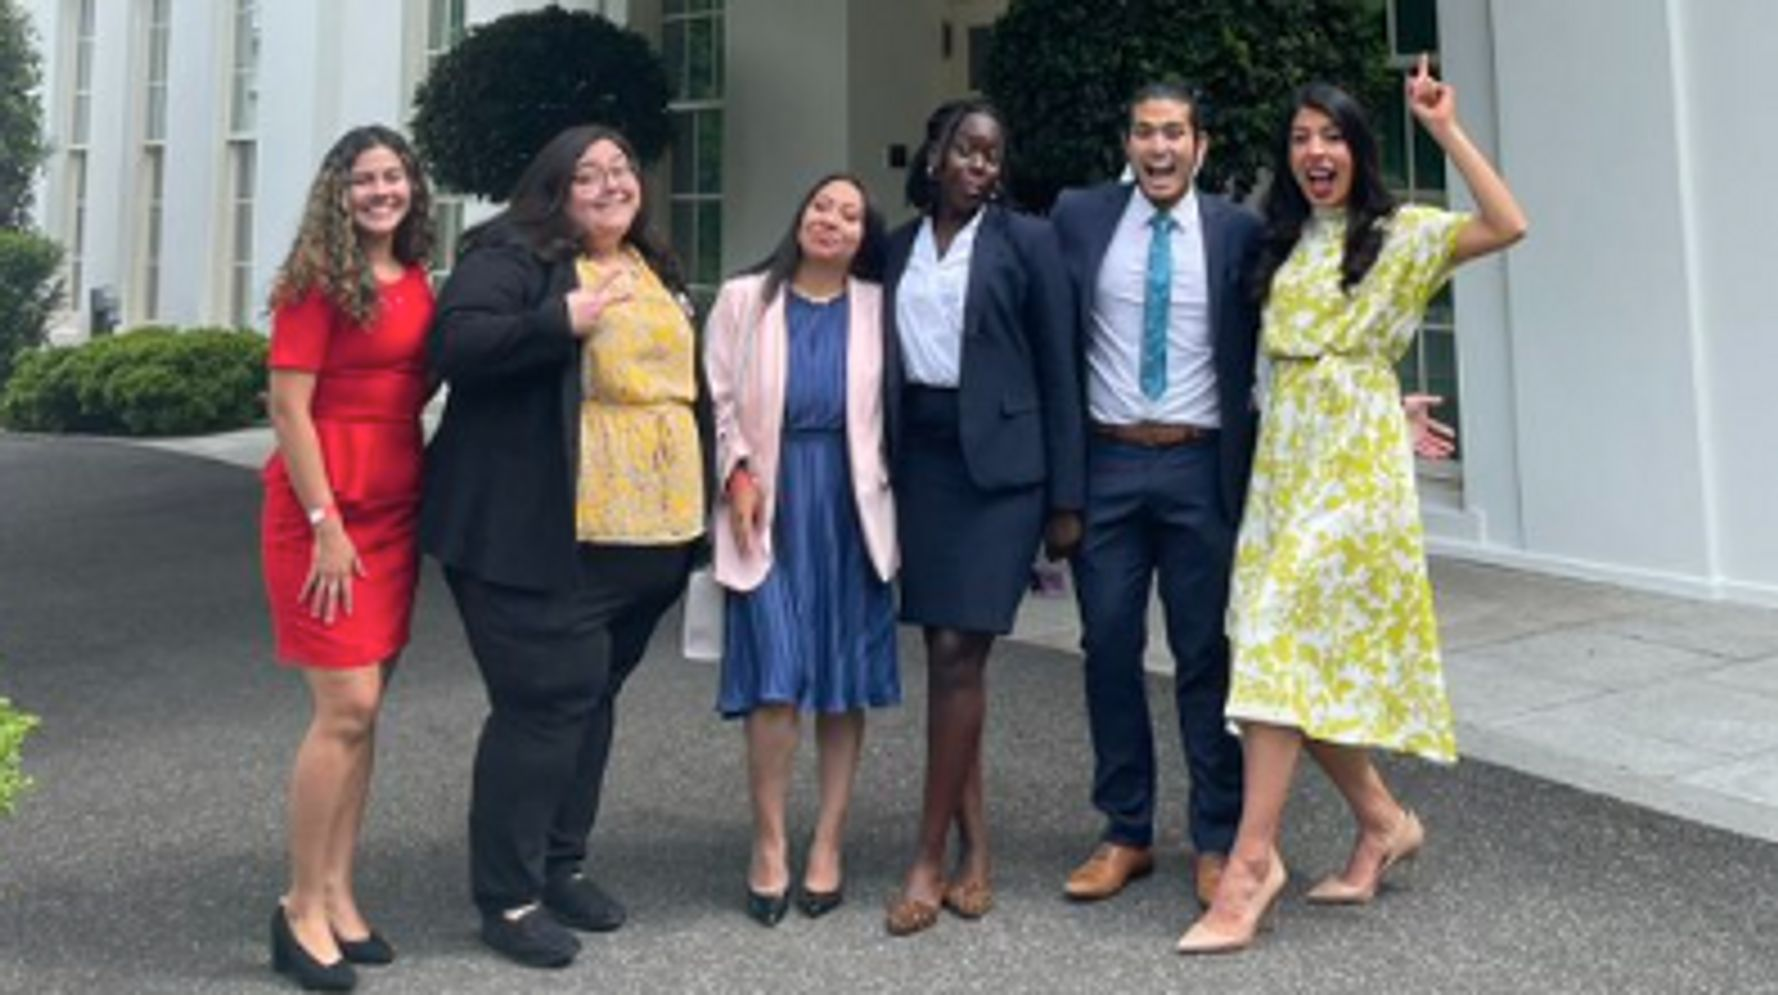 DACA Recipients Were 'Candid' With Biden About 'High Stakes' Of Immigration Reform